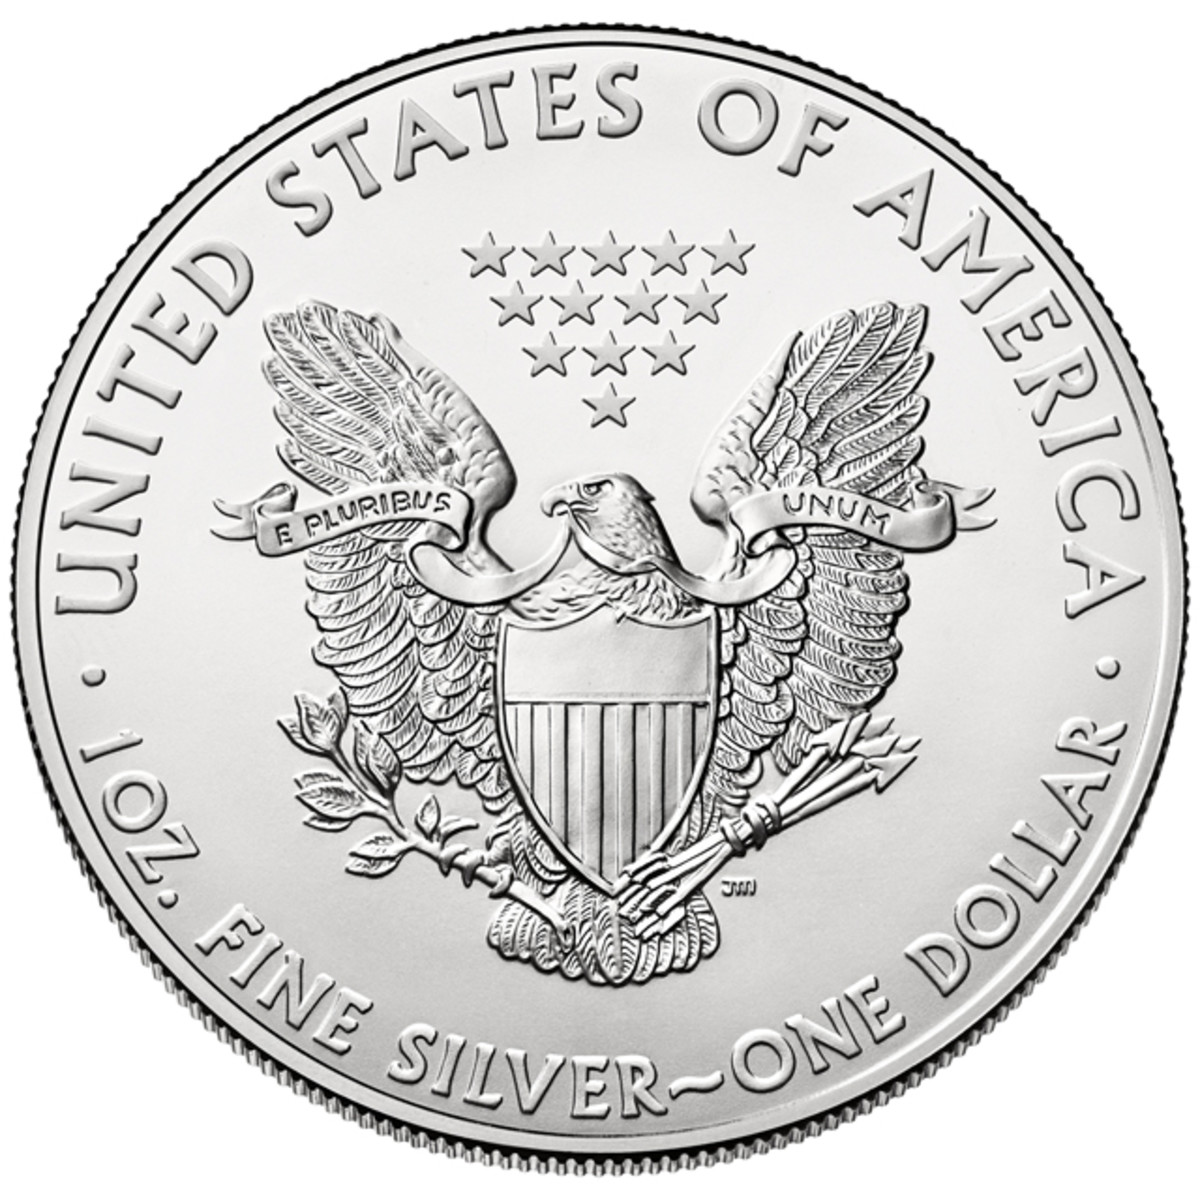 Silver Eagle buyers are saying demand has not let up for the popular bullion coin.